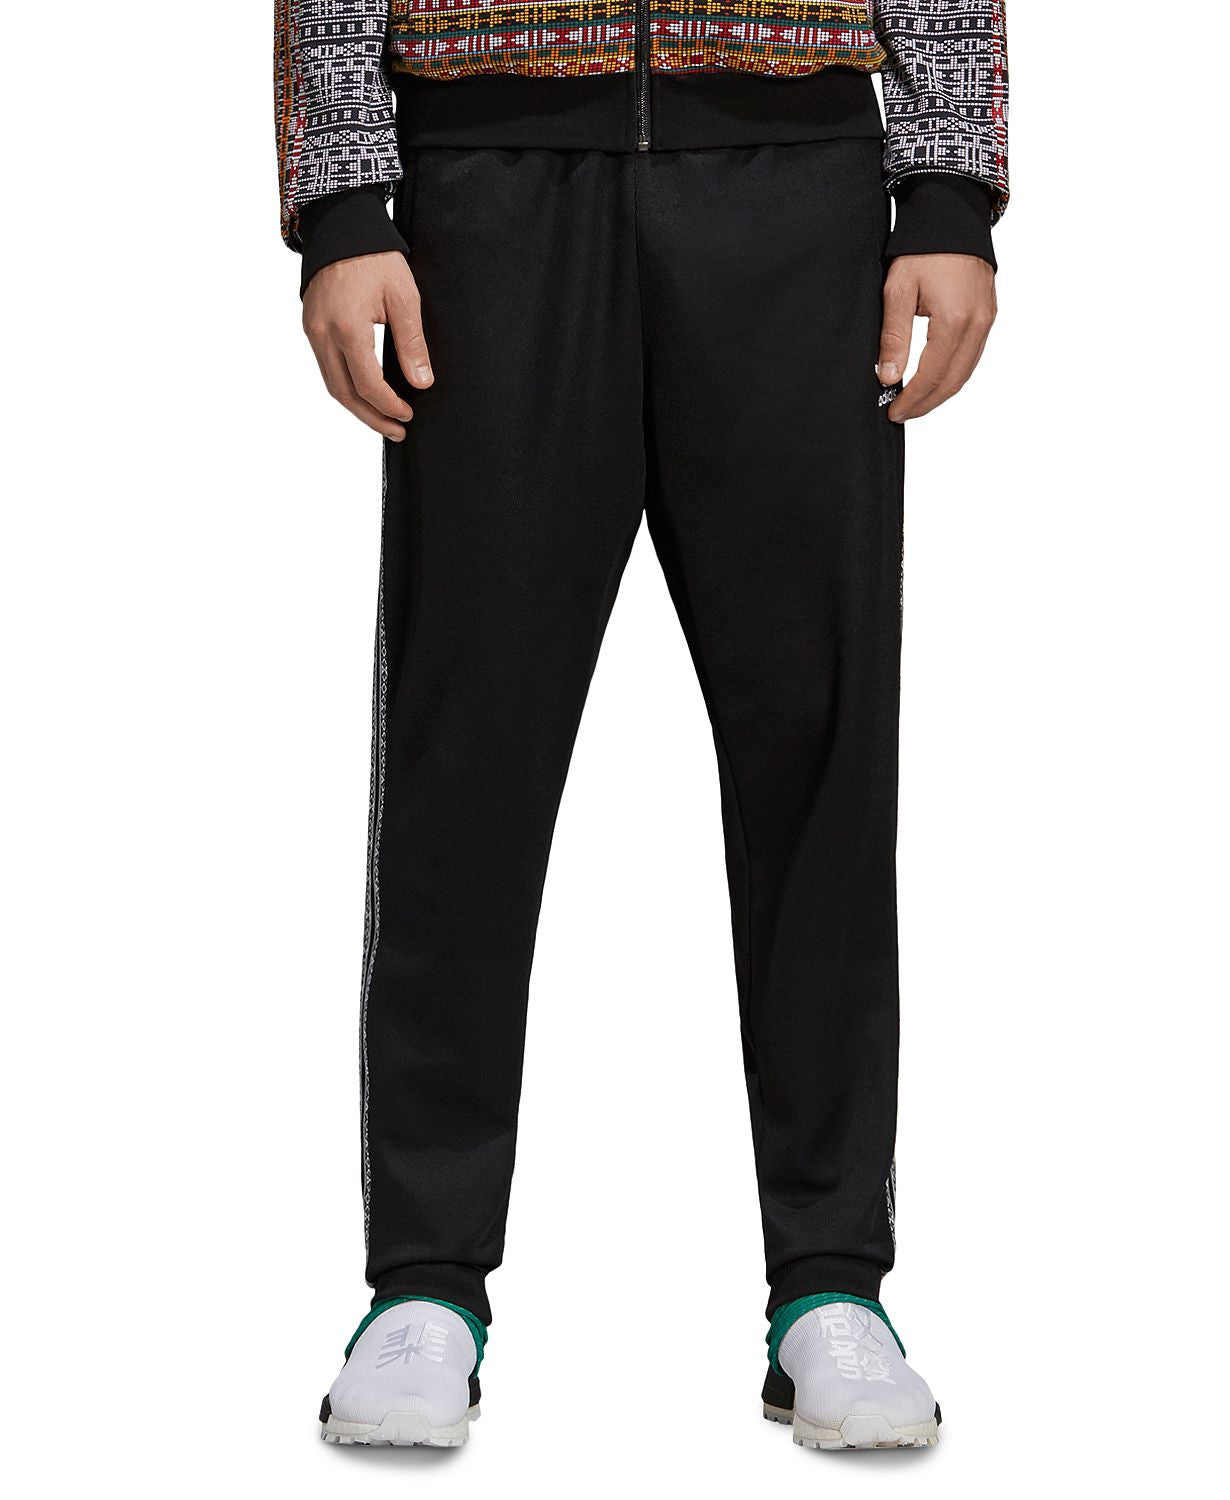 Adidas Originals X Pharrell Williams Solar Track Pants Black